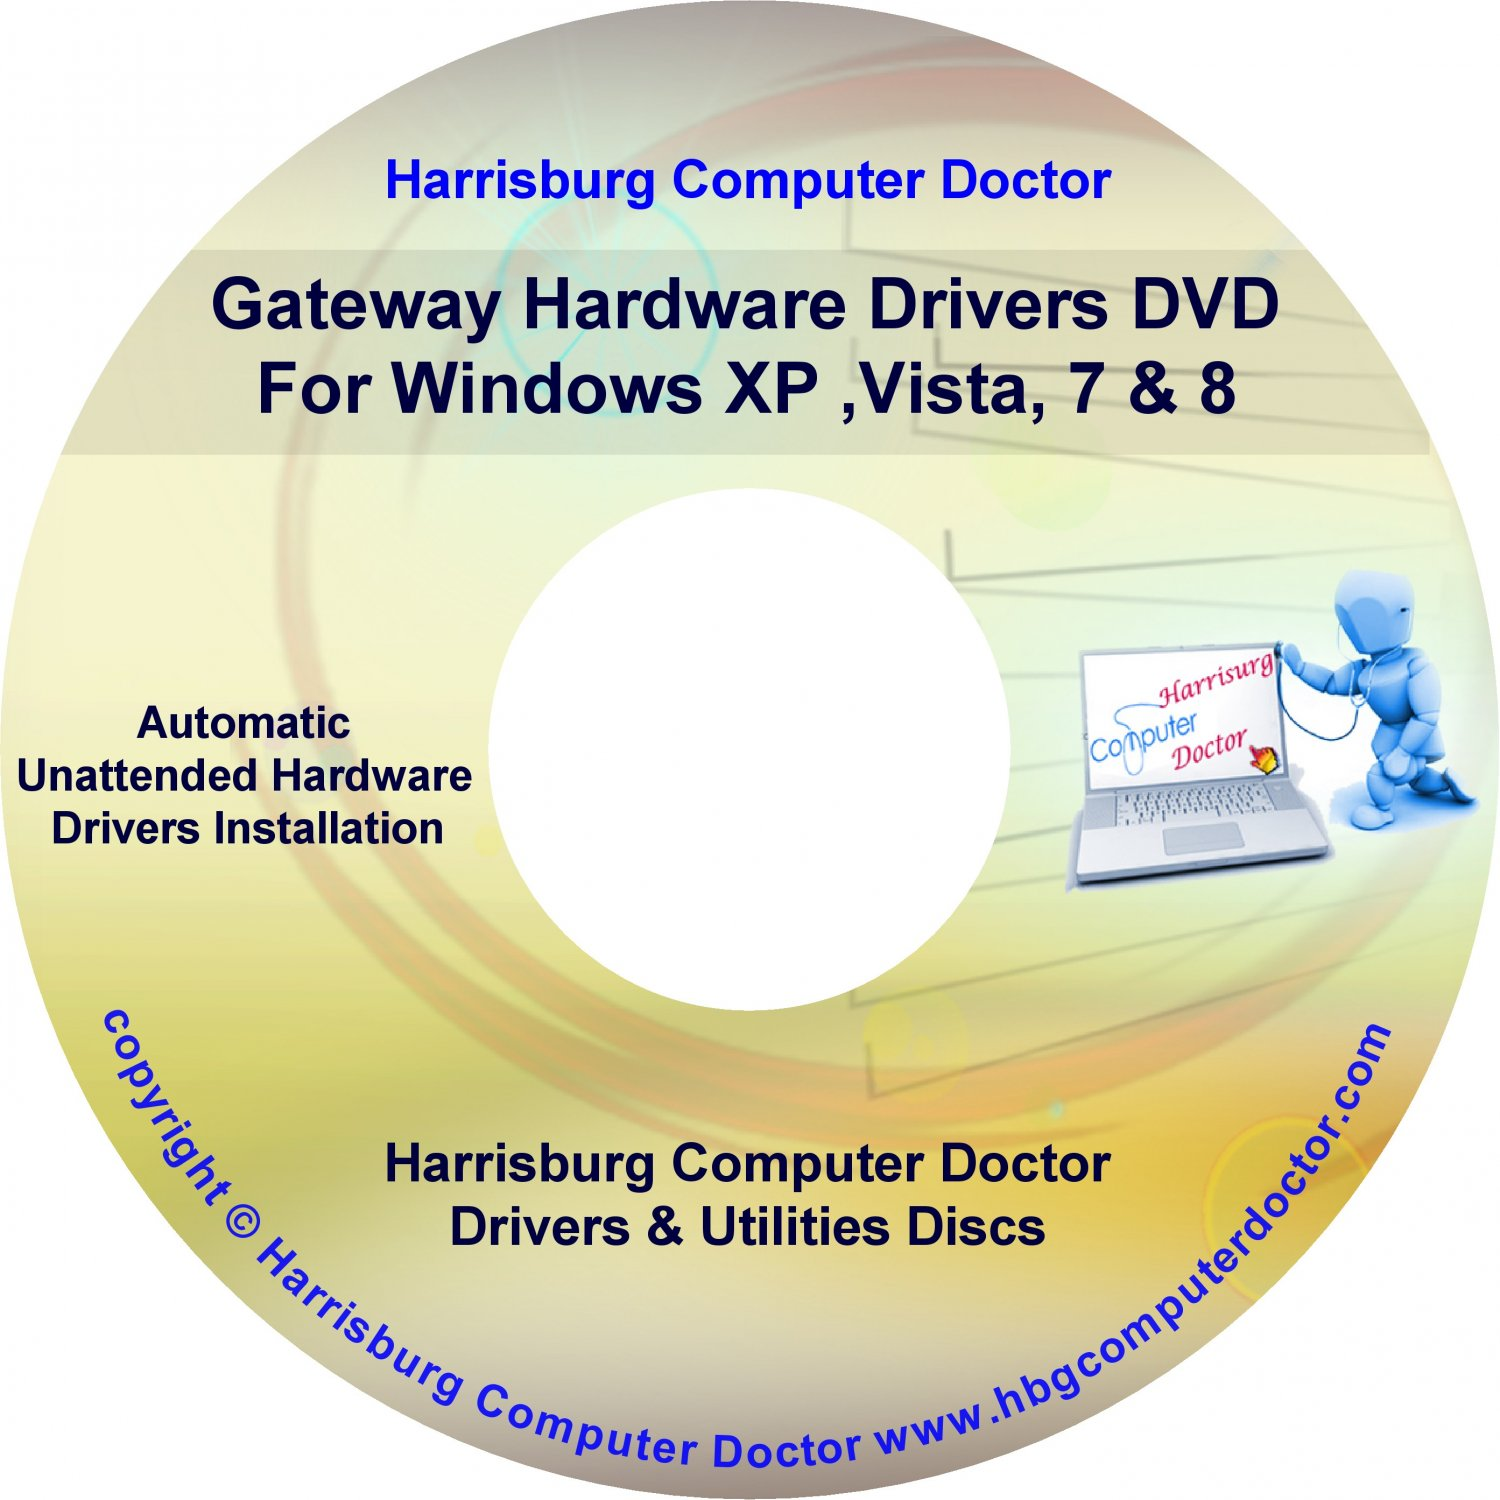 Gateway 6525GP Drivers DVD For Windows, XP, Vista, 7 & 8